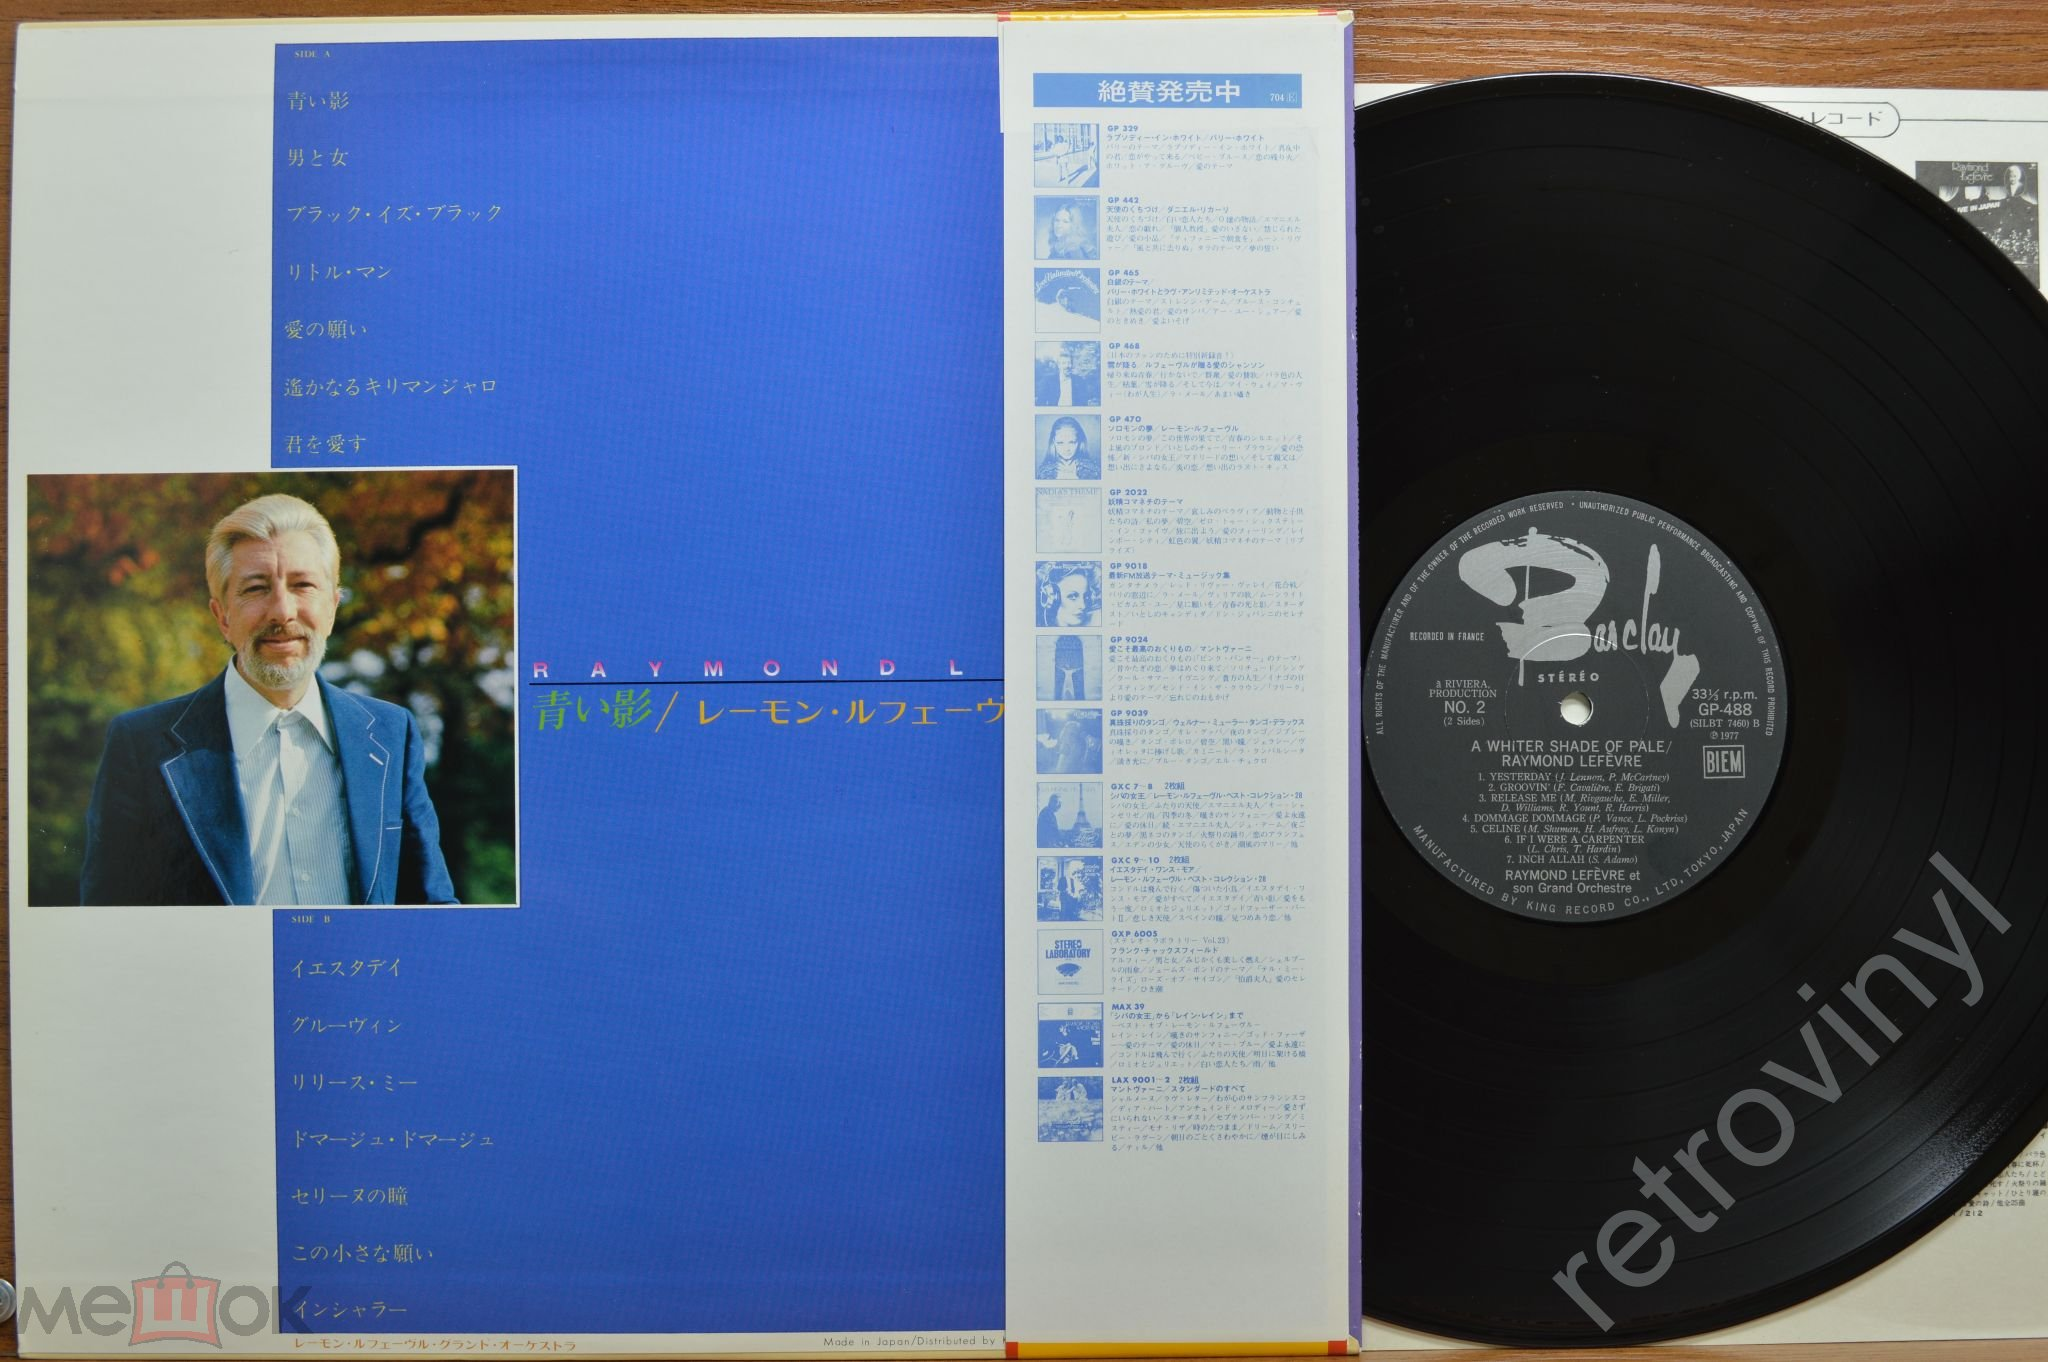 RAYMOND LEFEVRE - A Whiter Shade Of Pale - GP-488 Barclay/King Record ORIGINAL 1977 JAPAN MINT